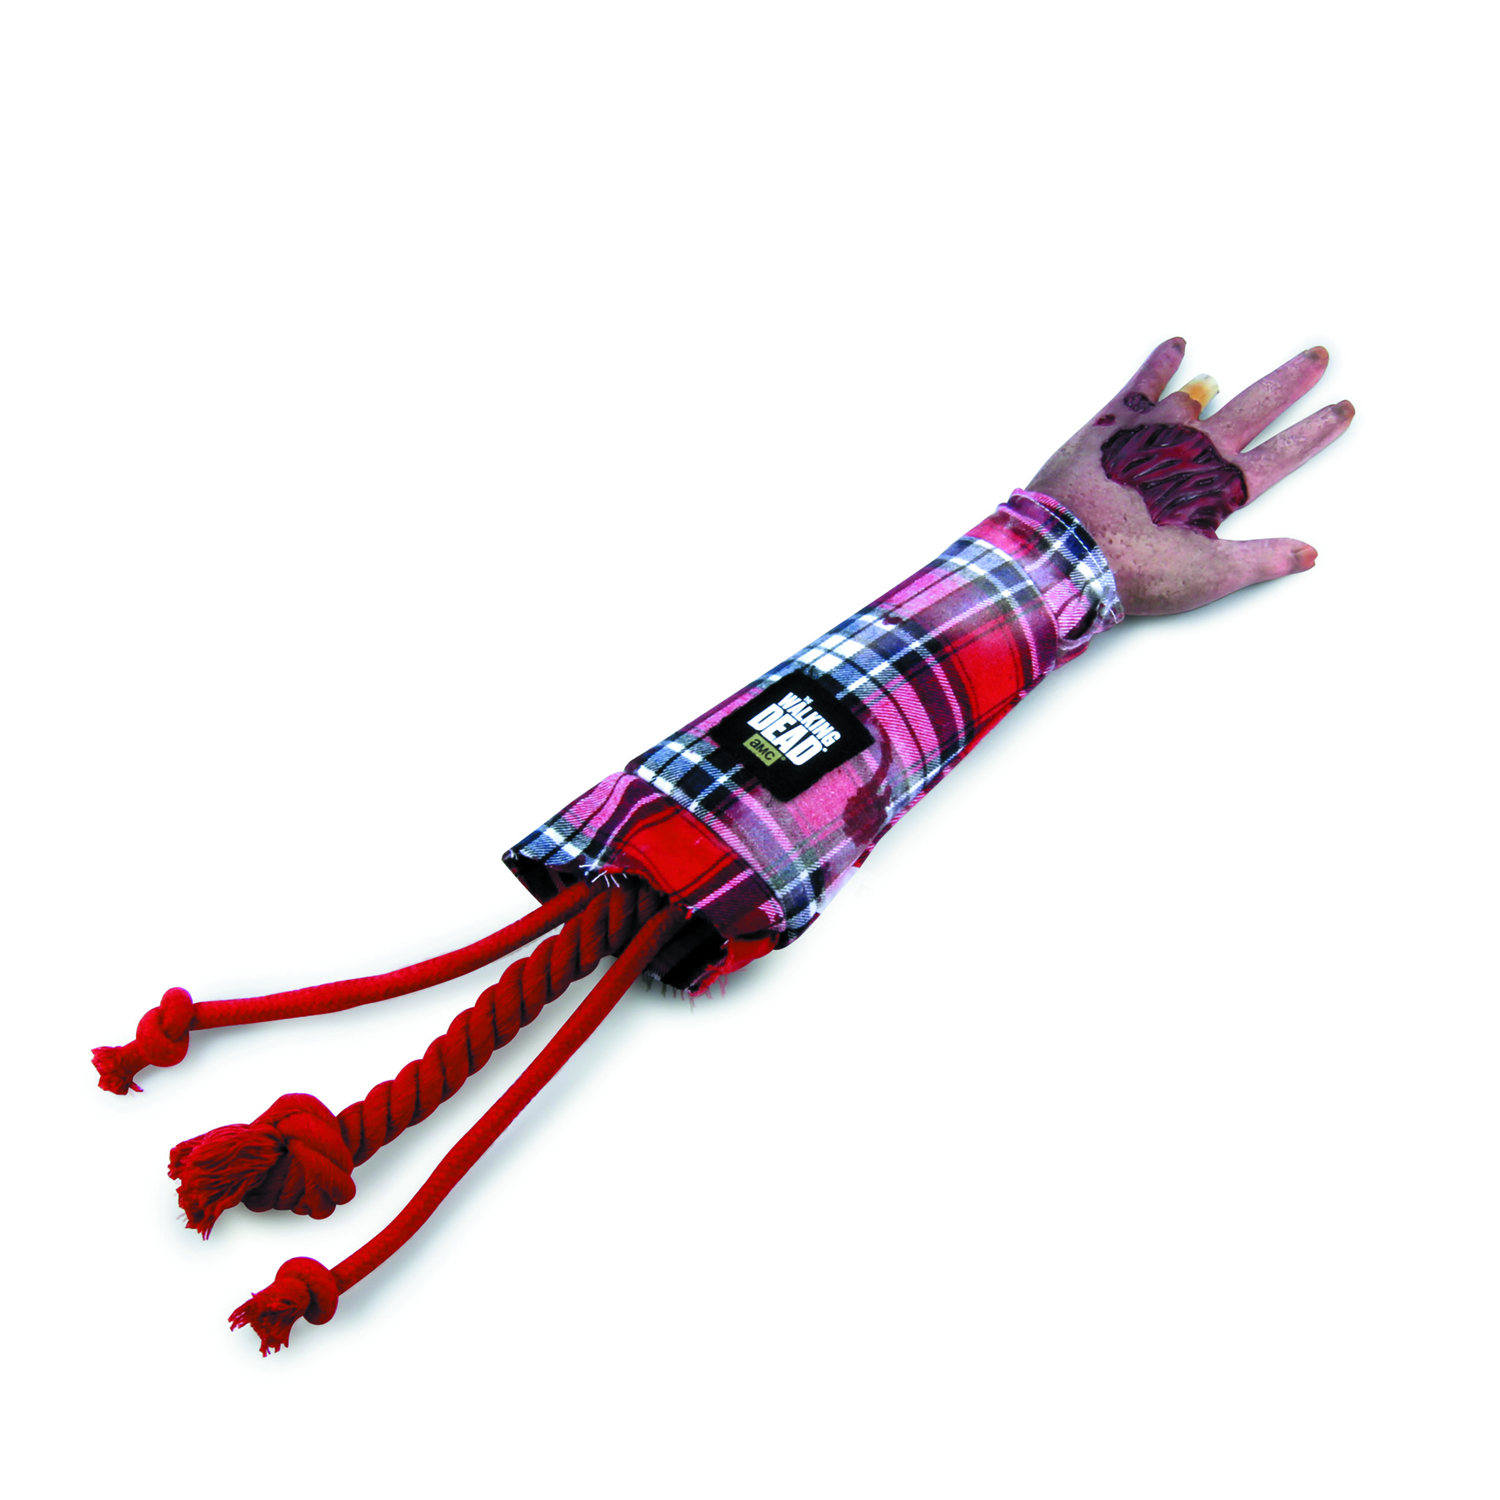 WALKING DEAD SEVERED WALKER ARM TUG TOY